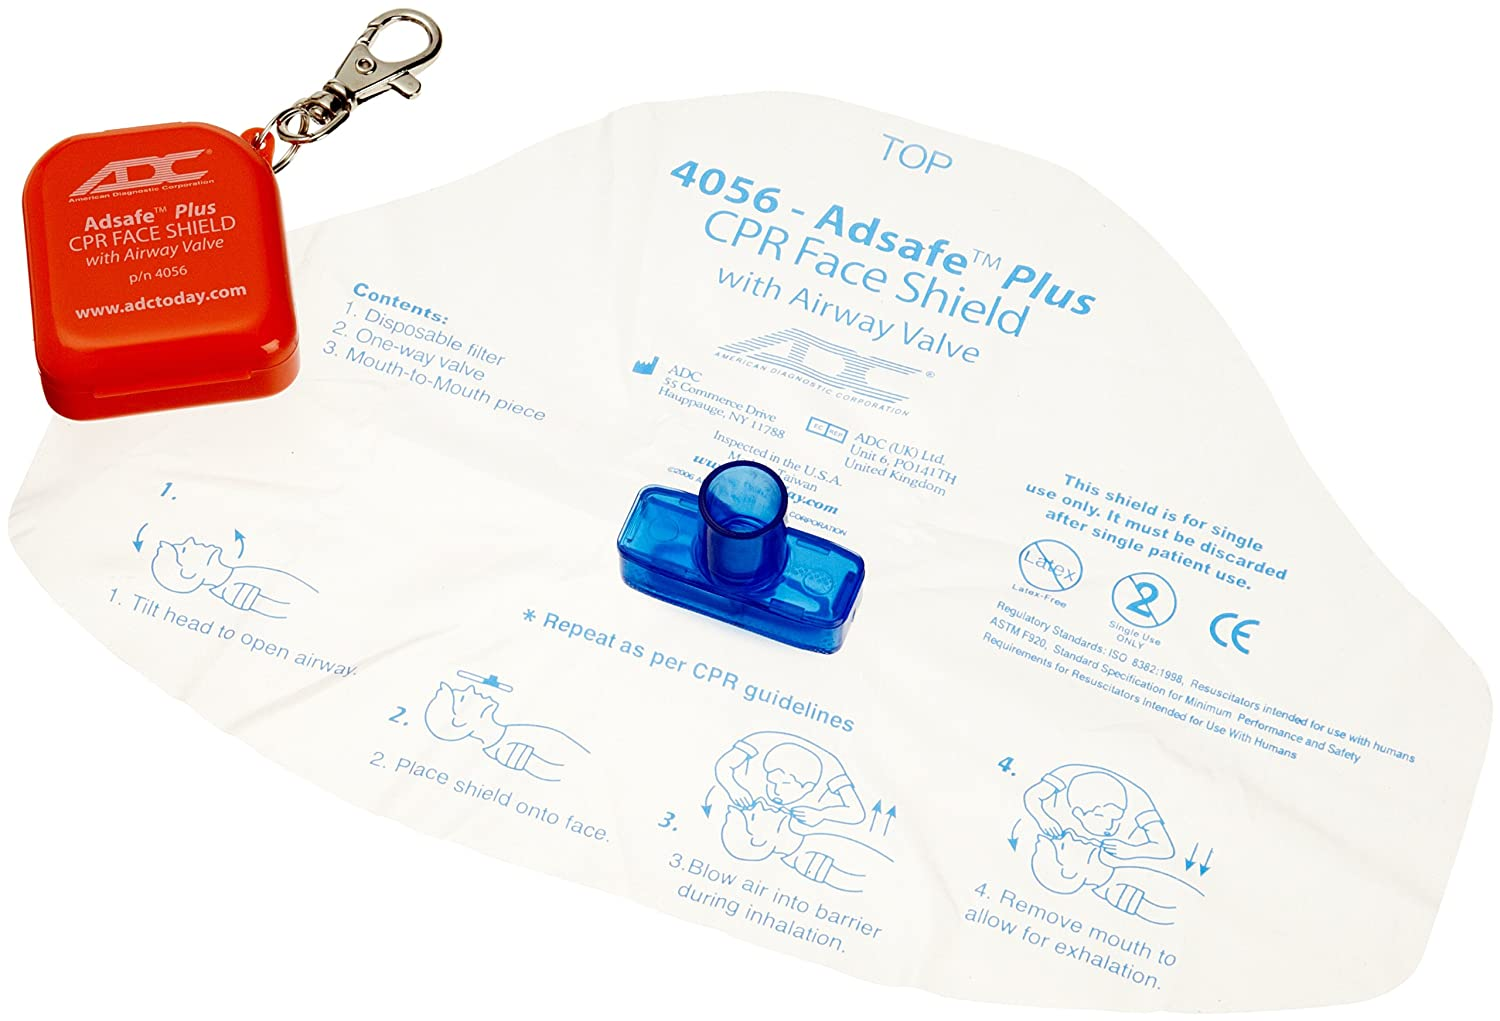 Amazon Adc 4056 Adsafe Plus Single Use Cpr Face Shield With